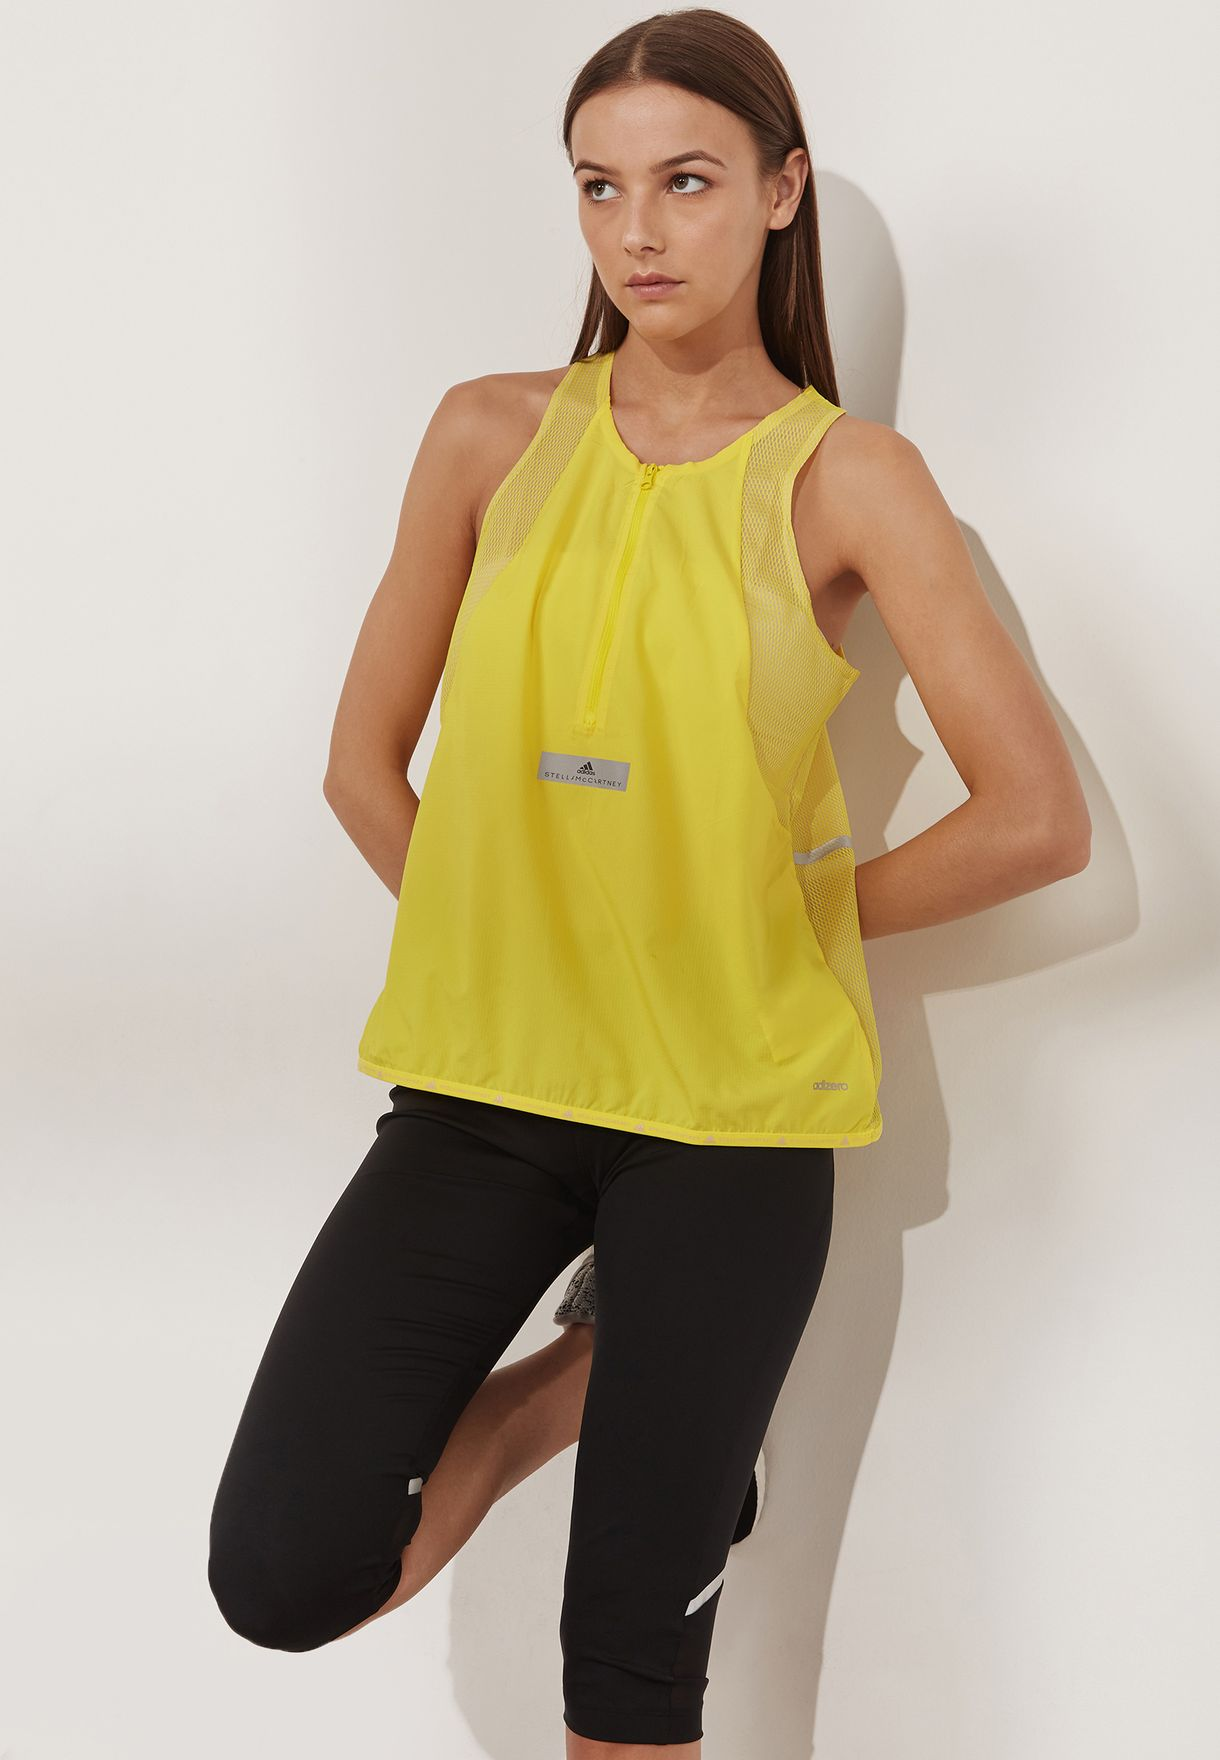 Women's Clothing Adidas Stella Mccartney Ladies Yellow Fittnes Top Size 38 Clothing, Shoes & Accessories